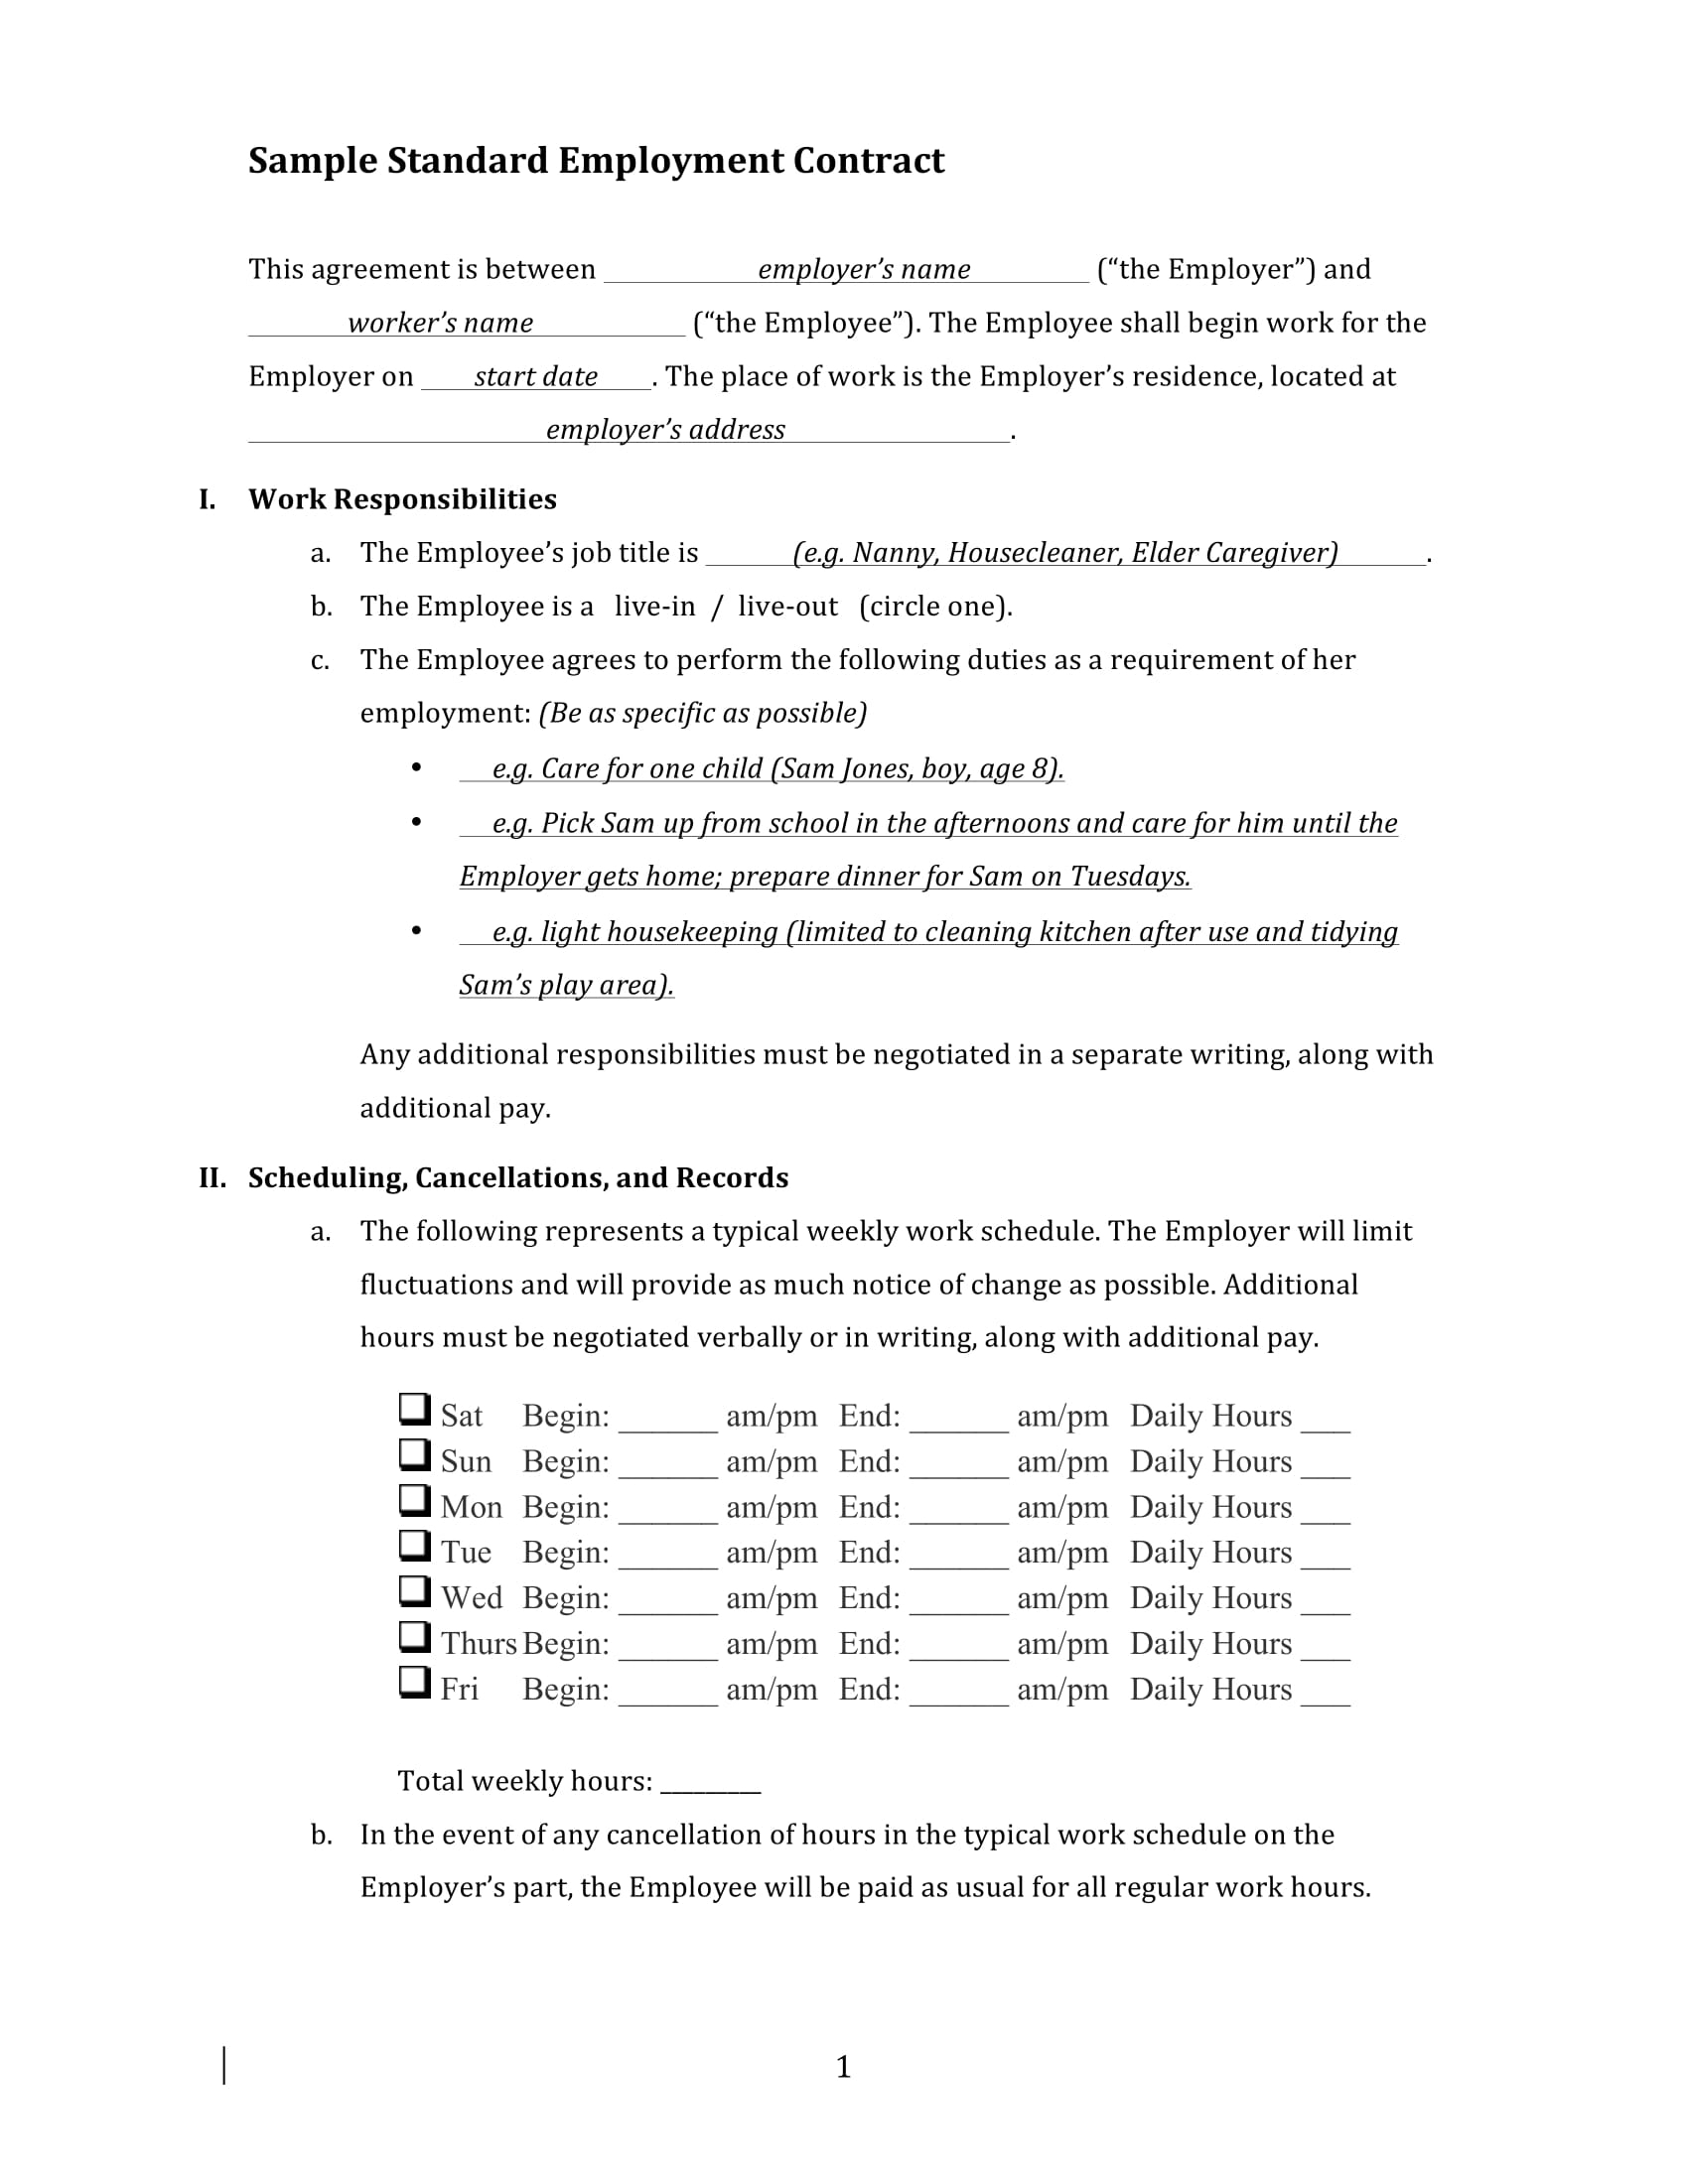 sample standard employment contract template